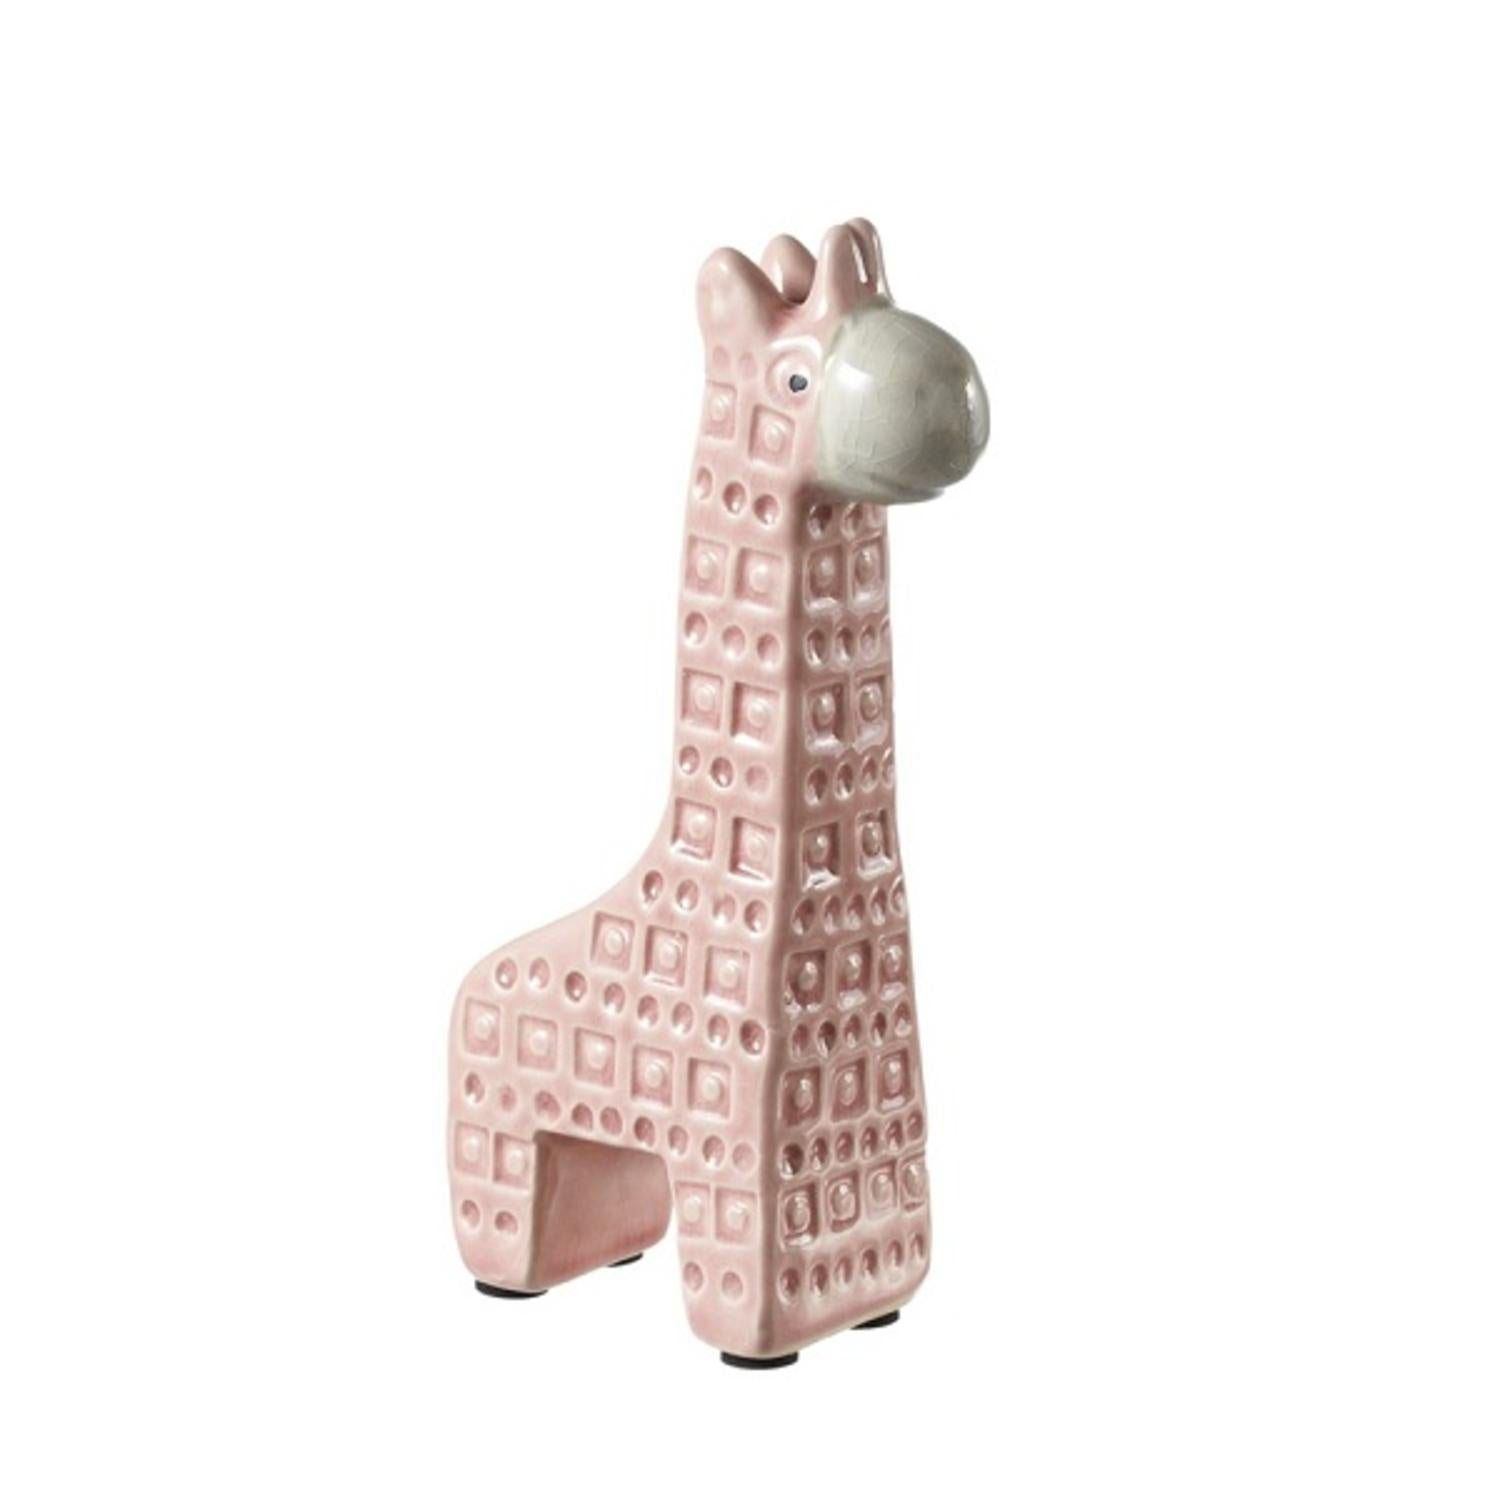 Pack Of 8 Short Baby Pink And White Ceramic Giraffe Statues 6 87 Free Shipping Today 22108346